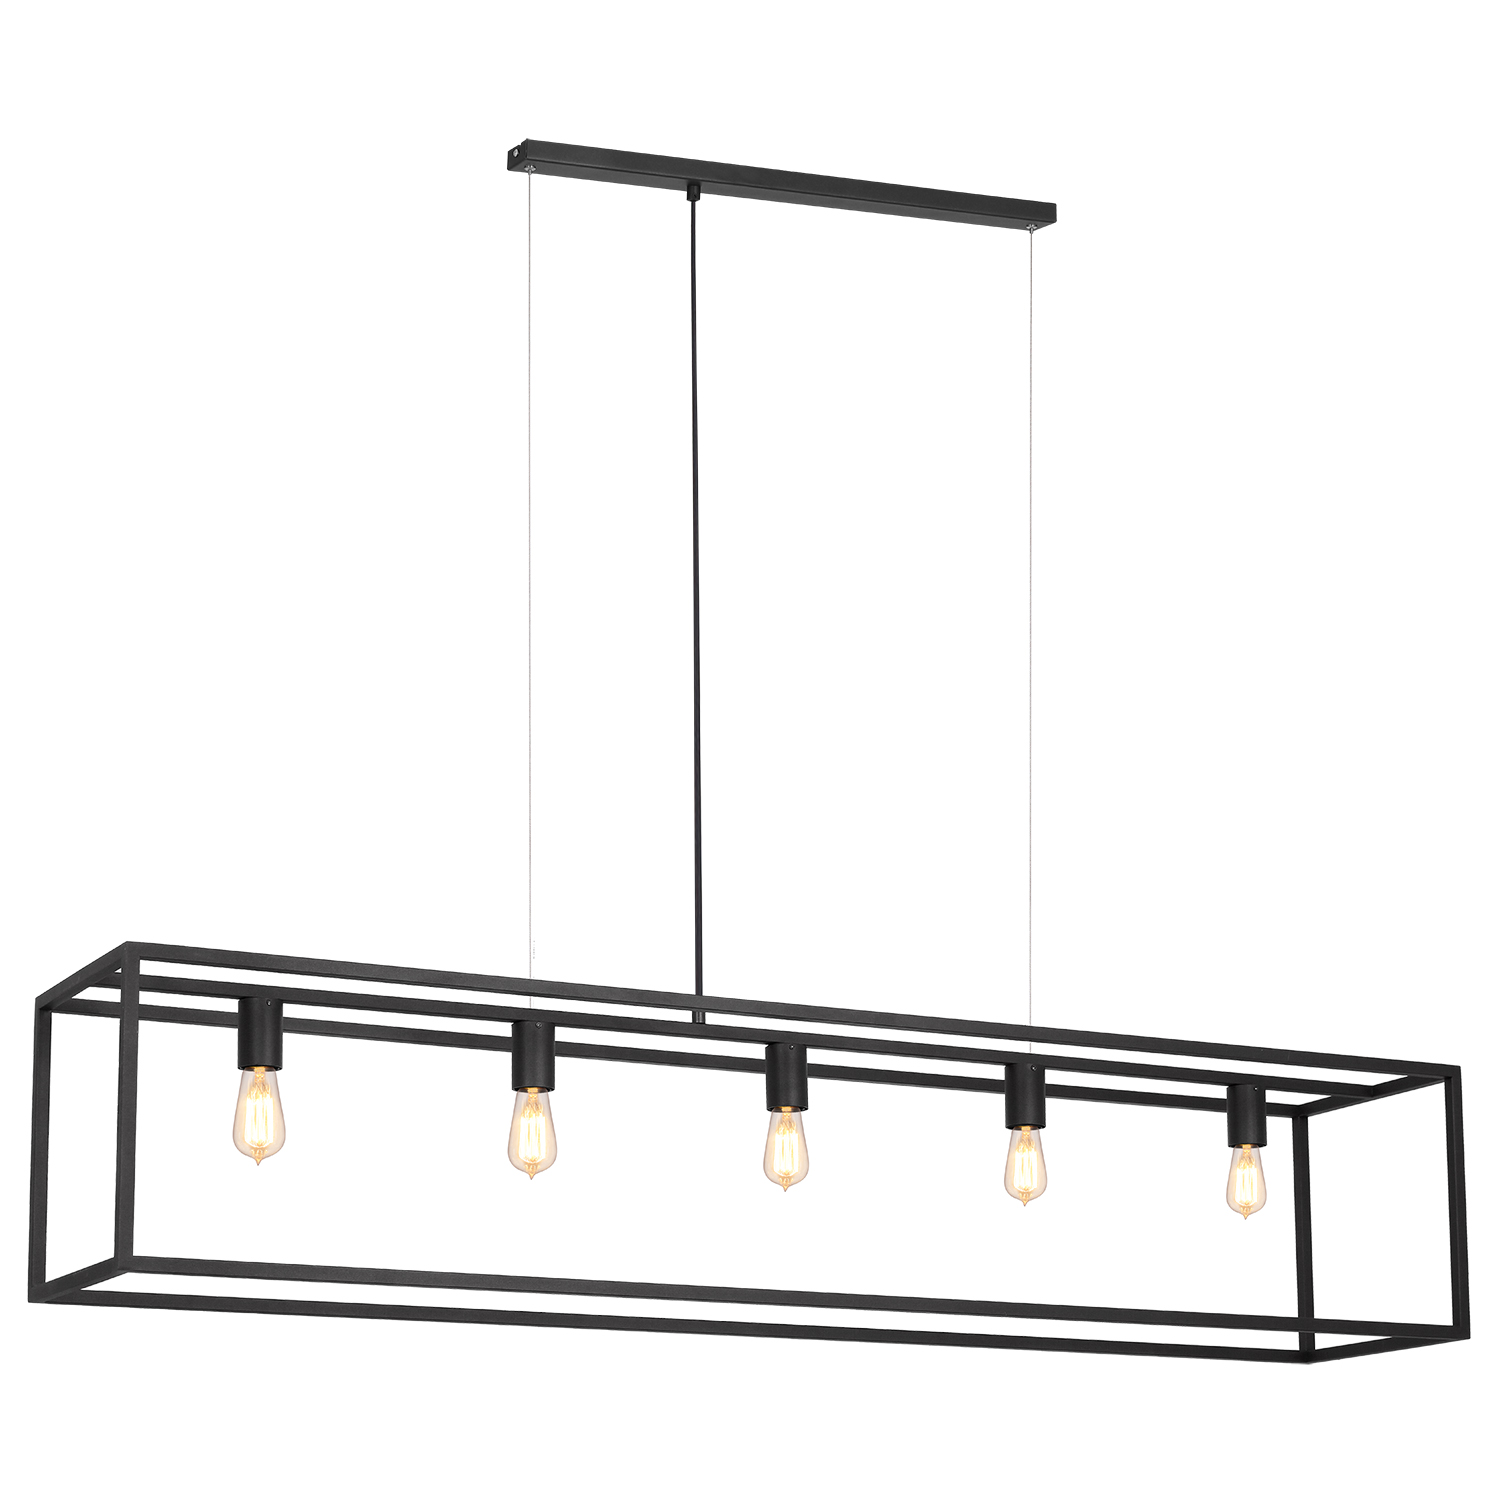 https://static.webshopapp.com/shops/071227/files/165291842/landelijke-hanglamp-arm-263.jpg